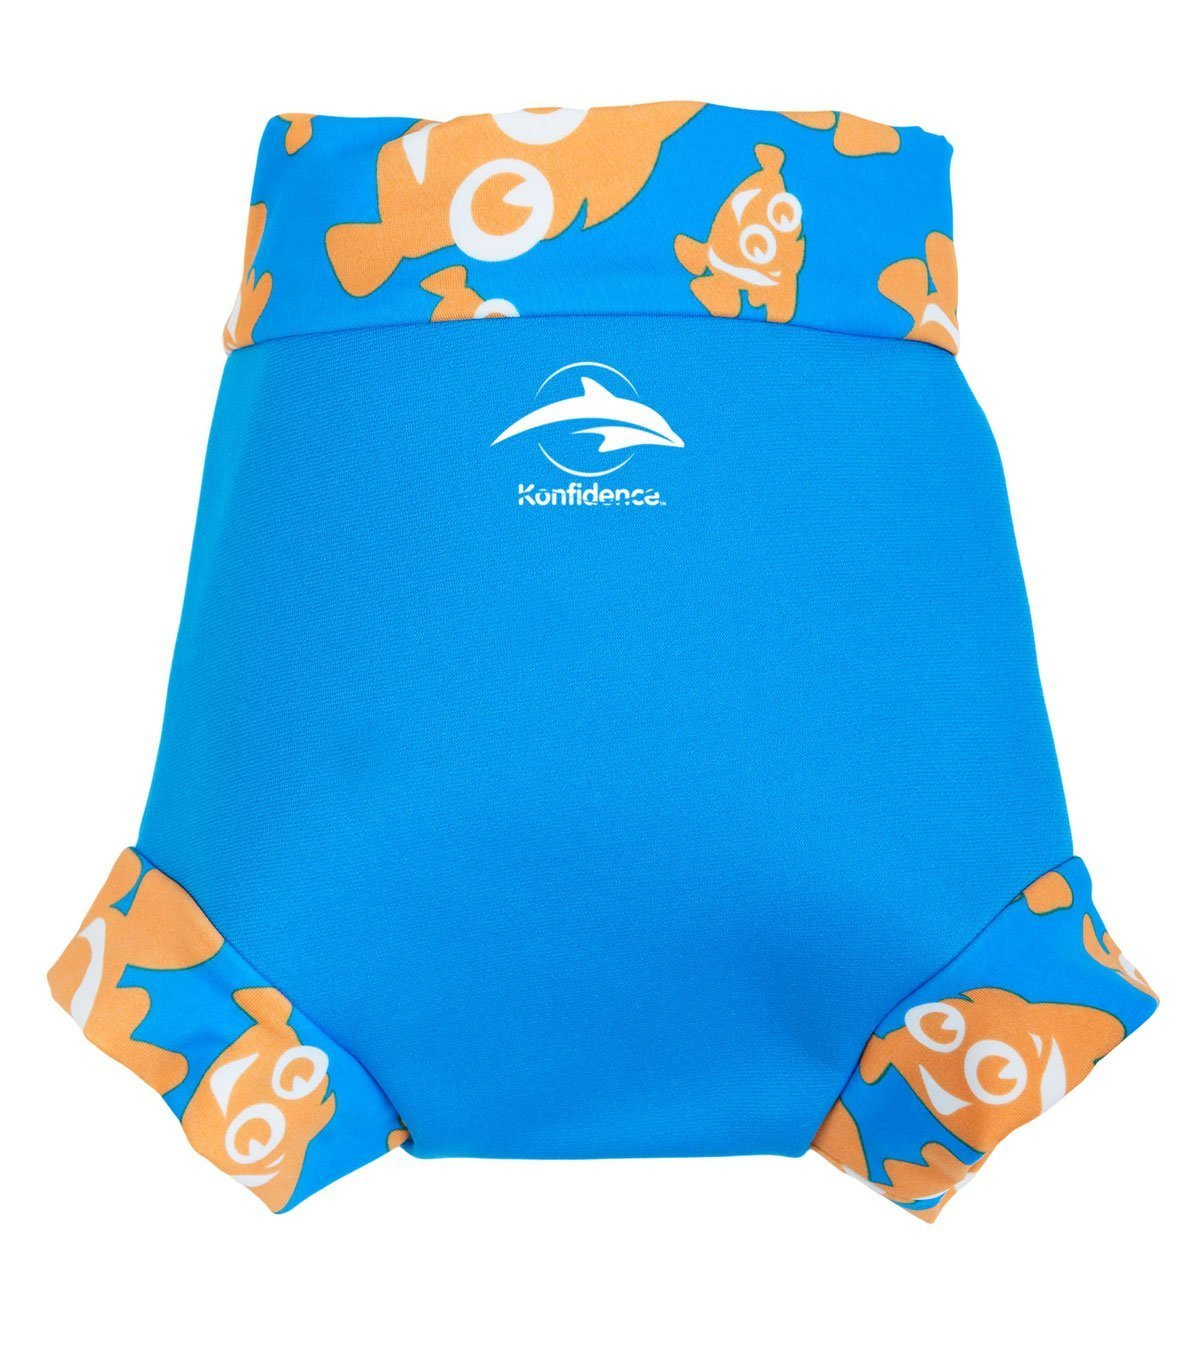 Konfidence Neonappy Swim Nappy Essential Baby Swimwear for swimming lessons